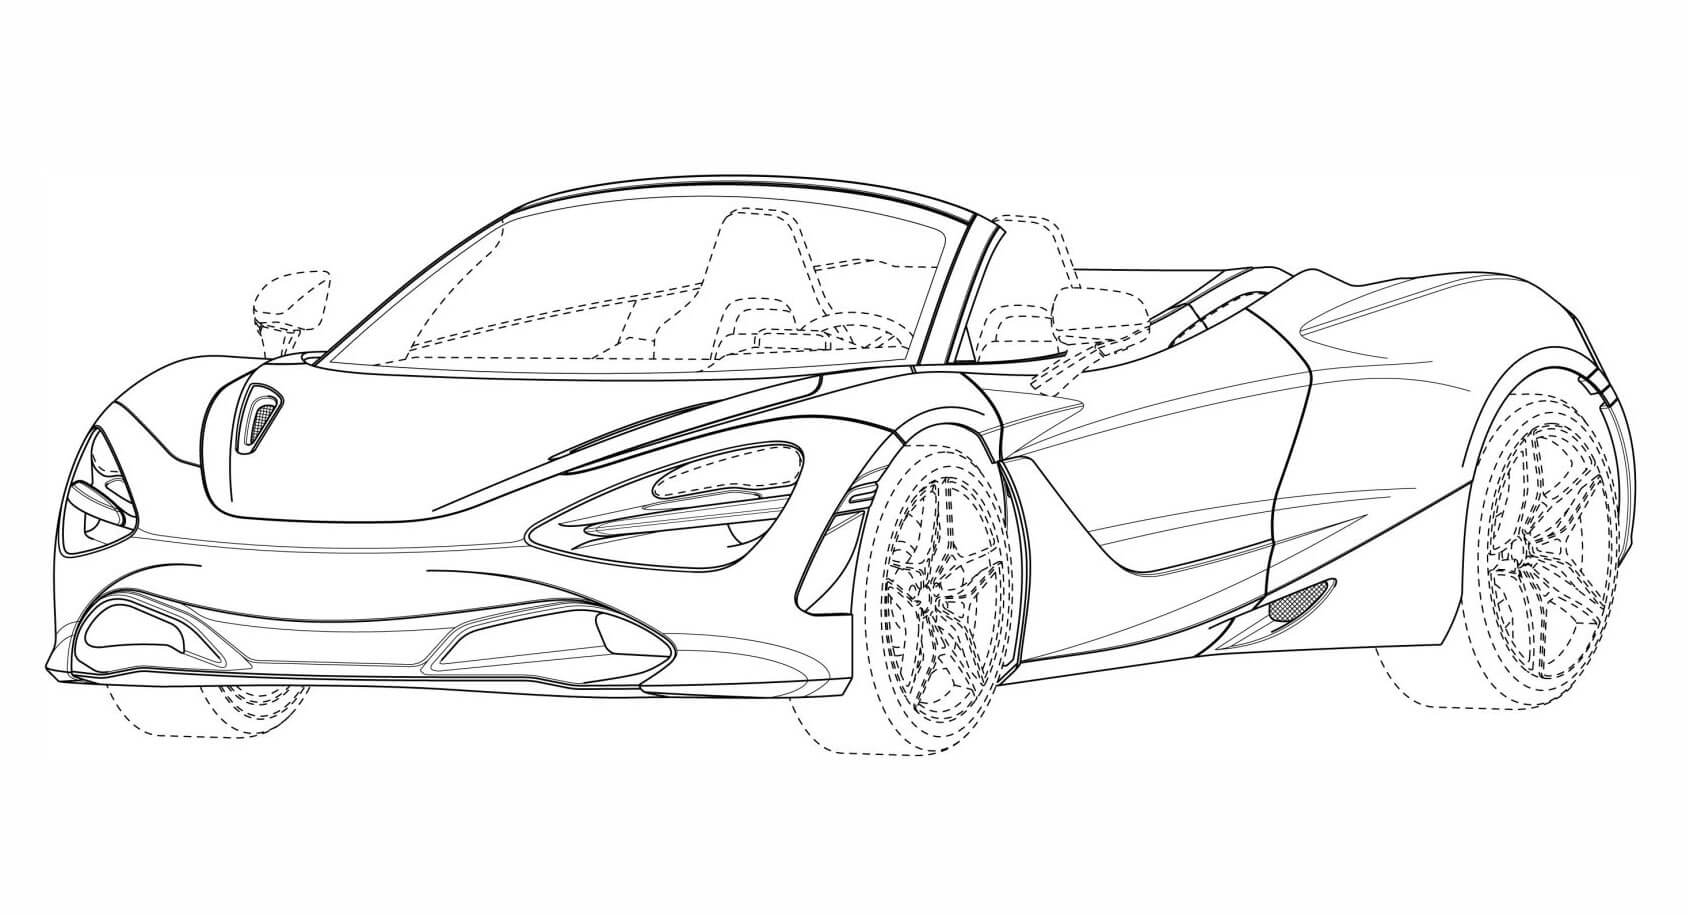 mclaren 720s coloring pages how to draw a mclaren 720s car drawings cartoon car coloring mclaren 720s pages